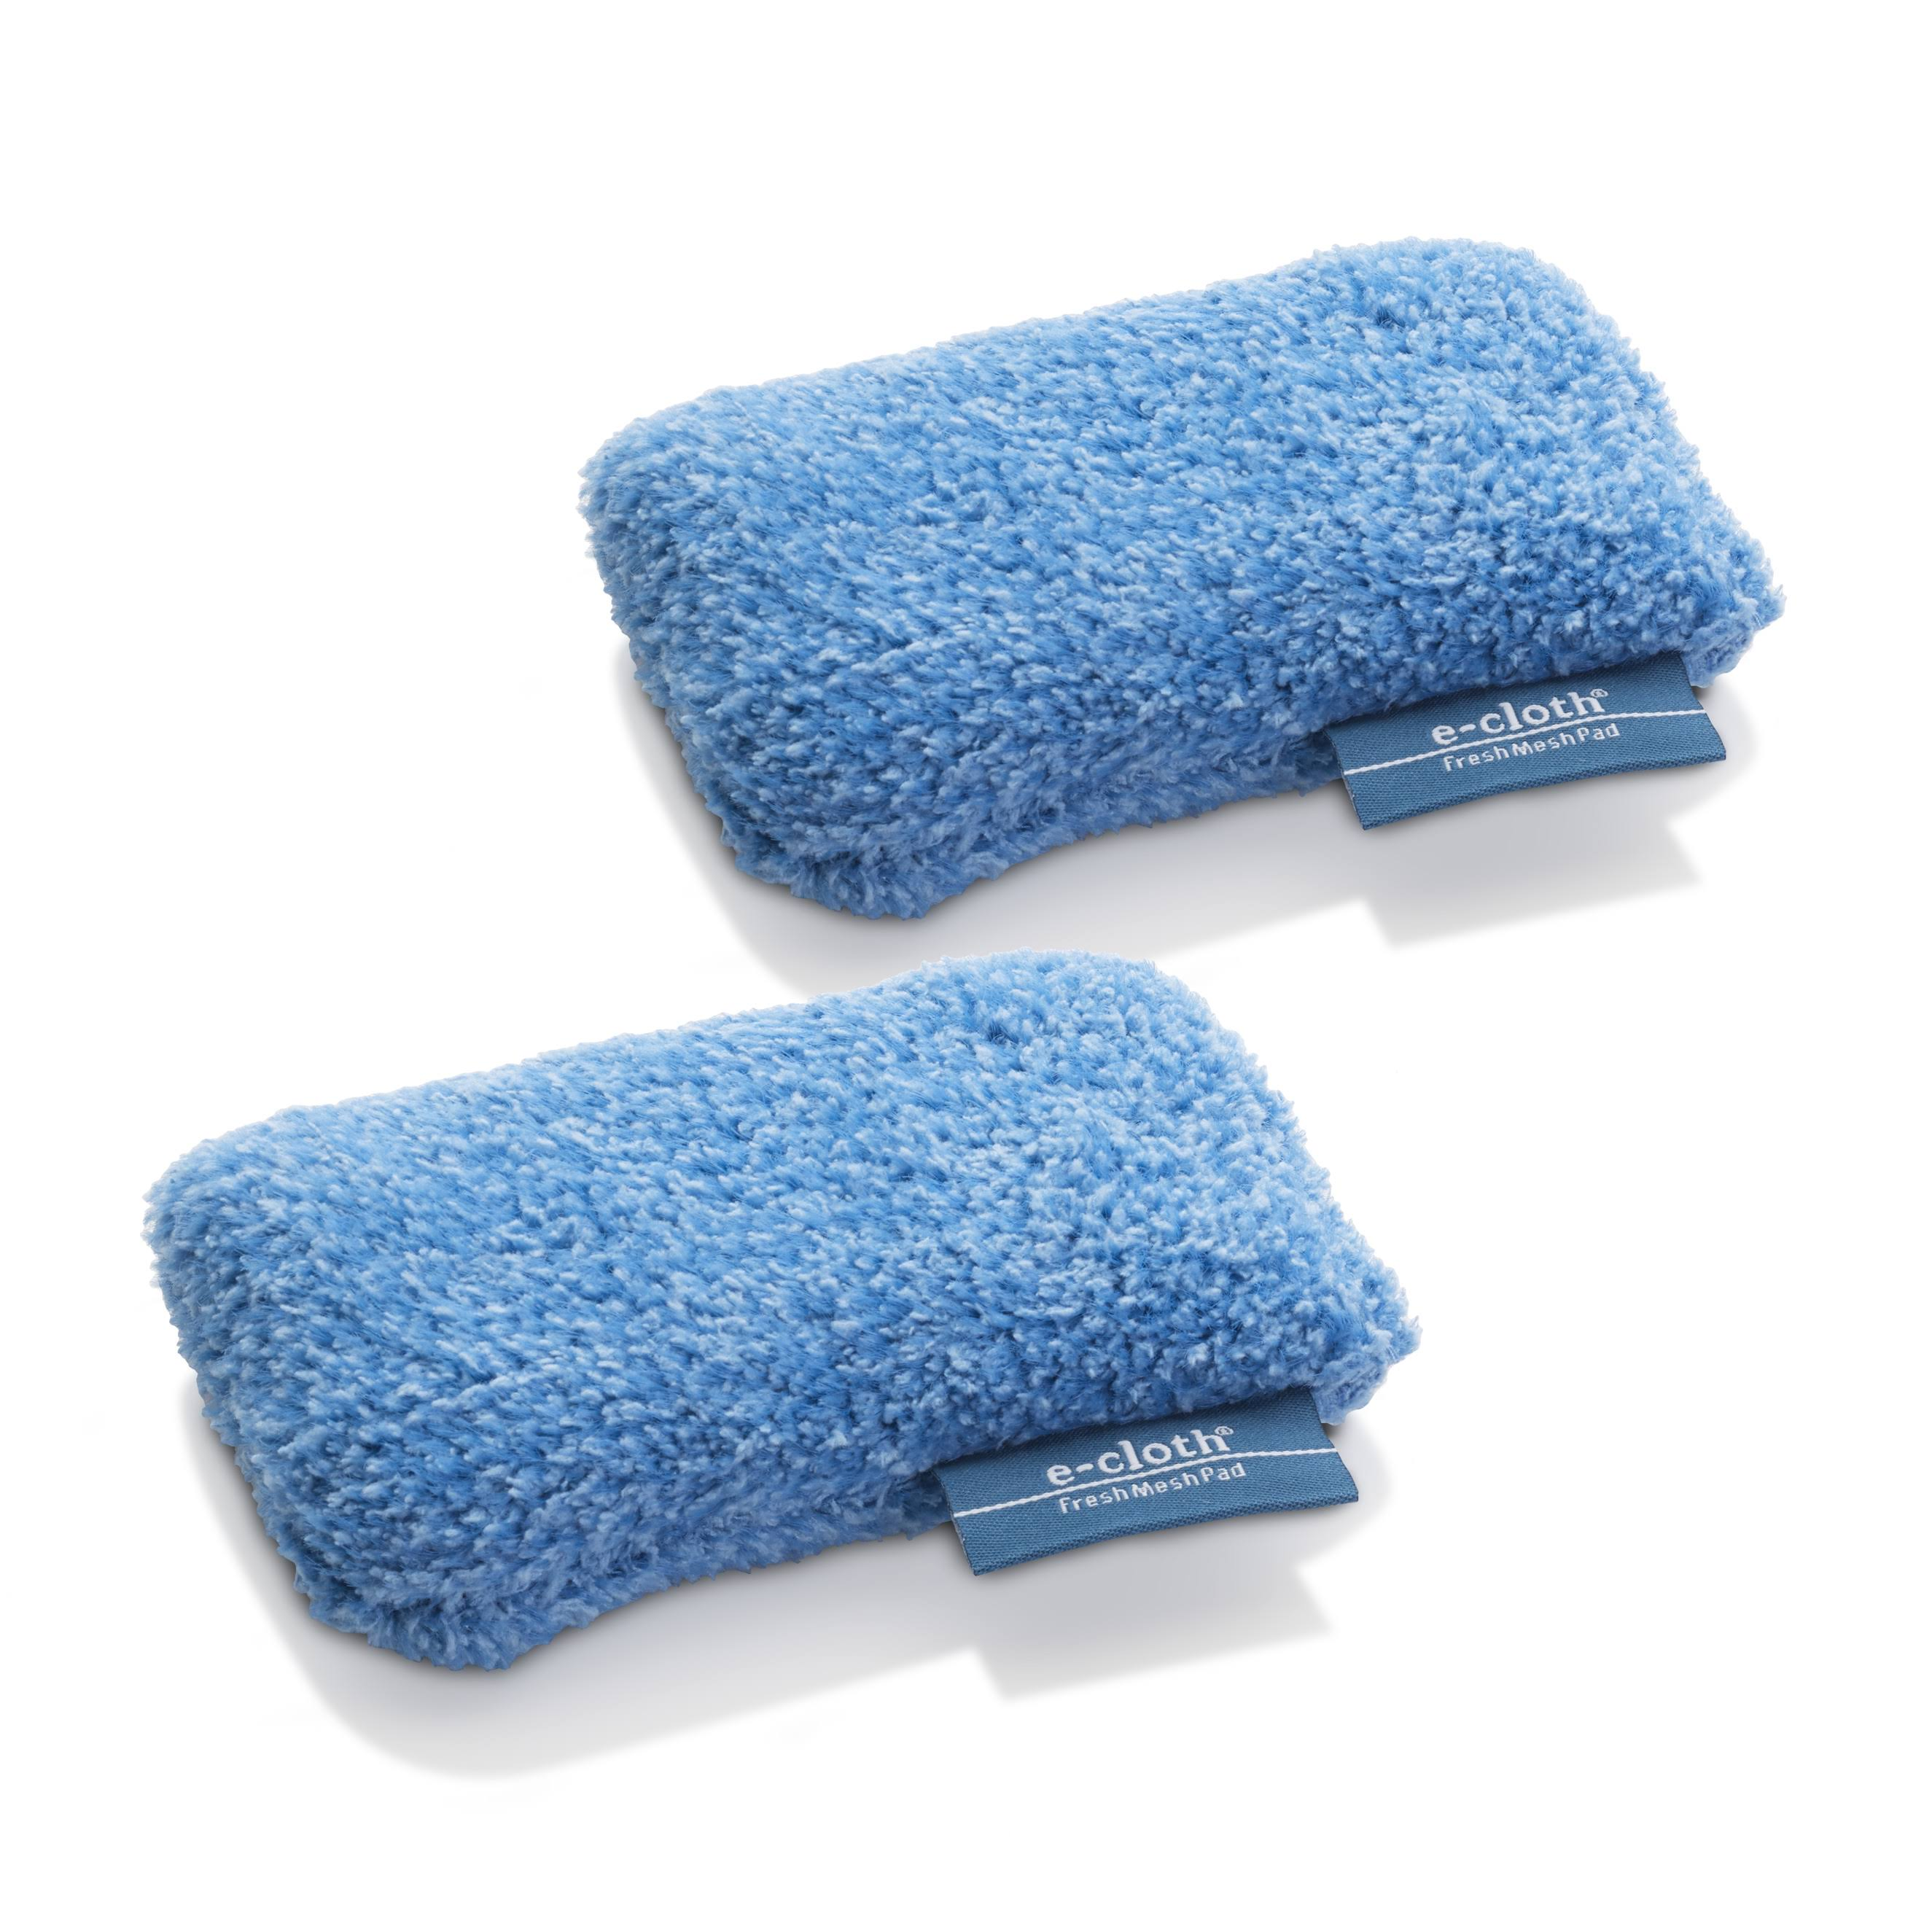 E Cloth Fresh Mesh Cleaning Pads